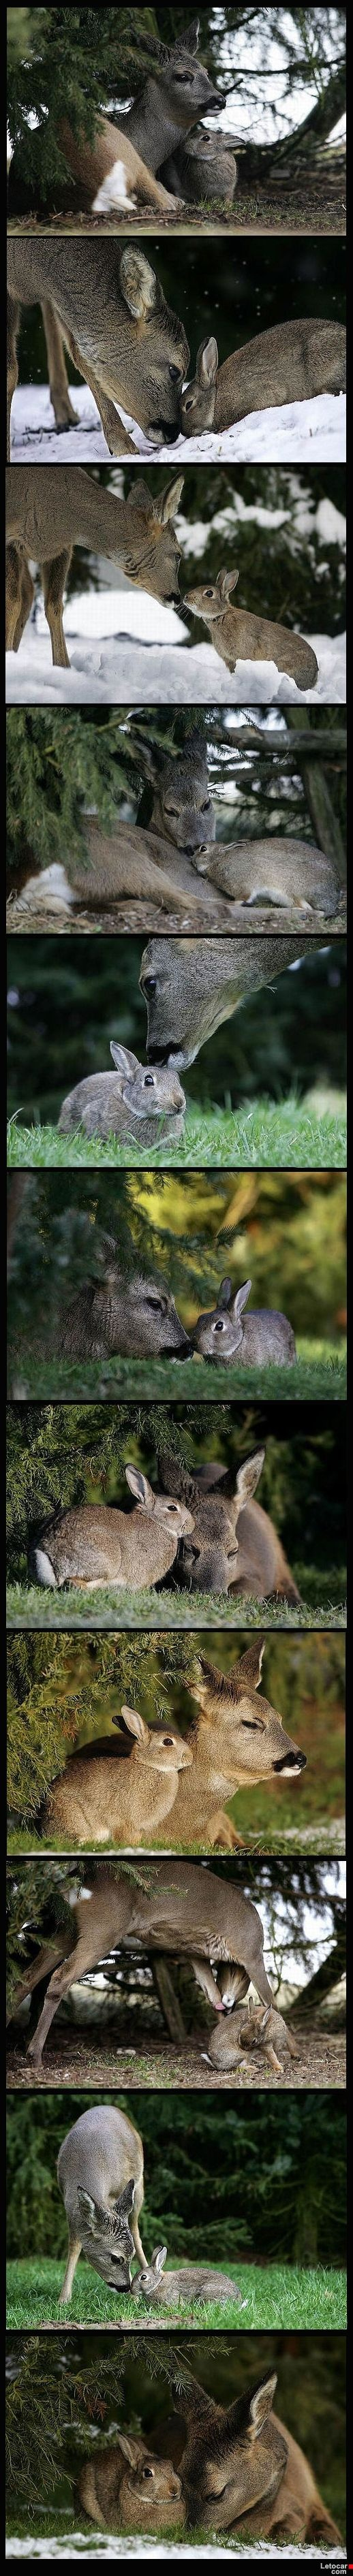 best cute images on pinterest adorable animals animal babies